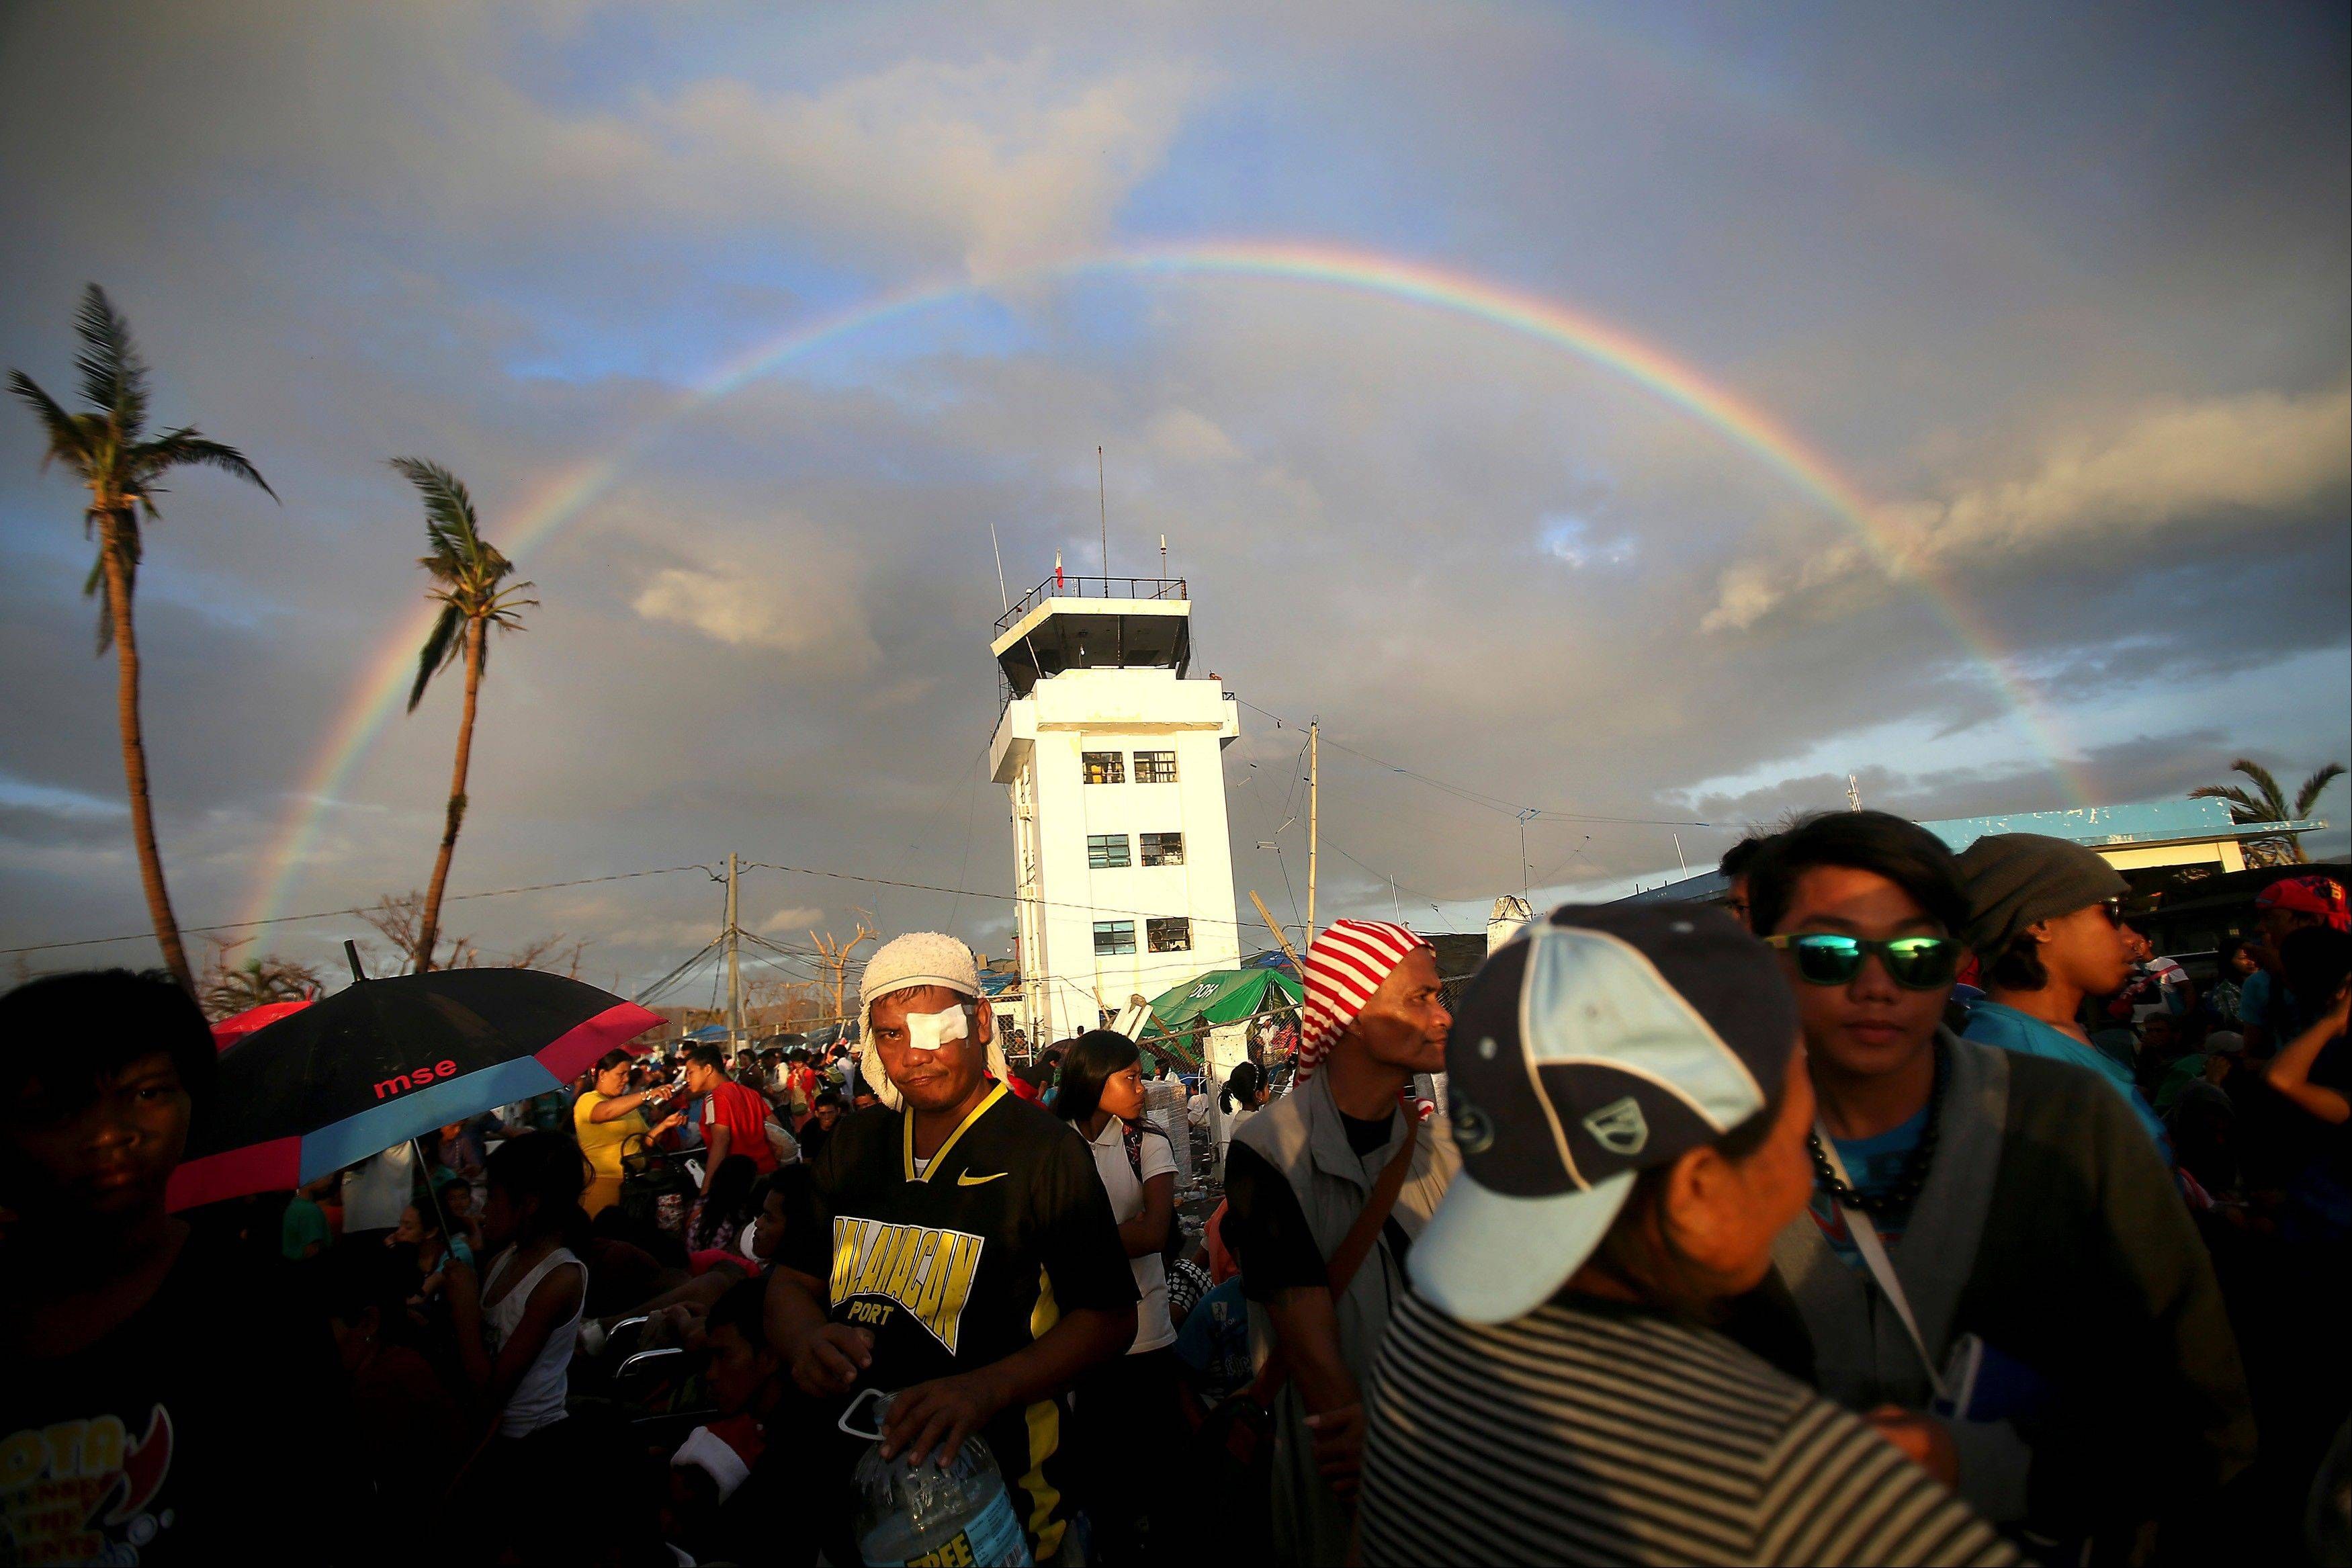 A rainbow forms over the airport in Tacloban, Leyte province, central Philippines where survivors of Typhoon Haiyan wait to be evacuated early Friday, Nov. 15, 2013. Hundreds of thousands of people were displaced by Typhoon Haiyan, which tore across several islands in the eastern Philippines on Nov. 8.